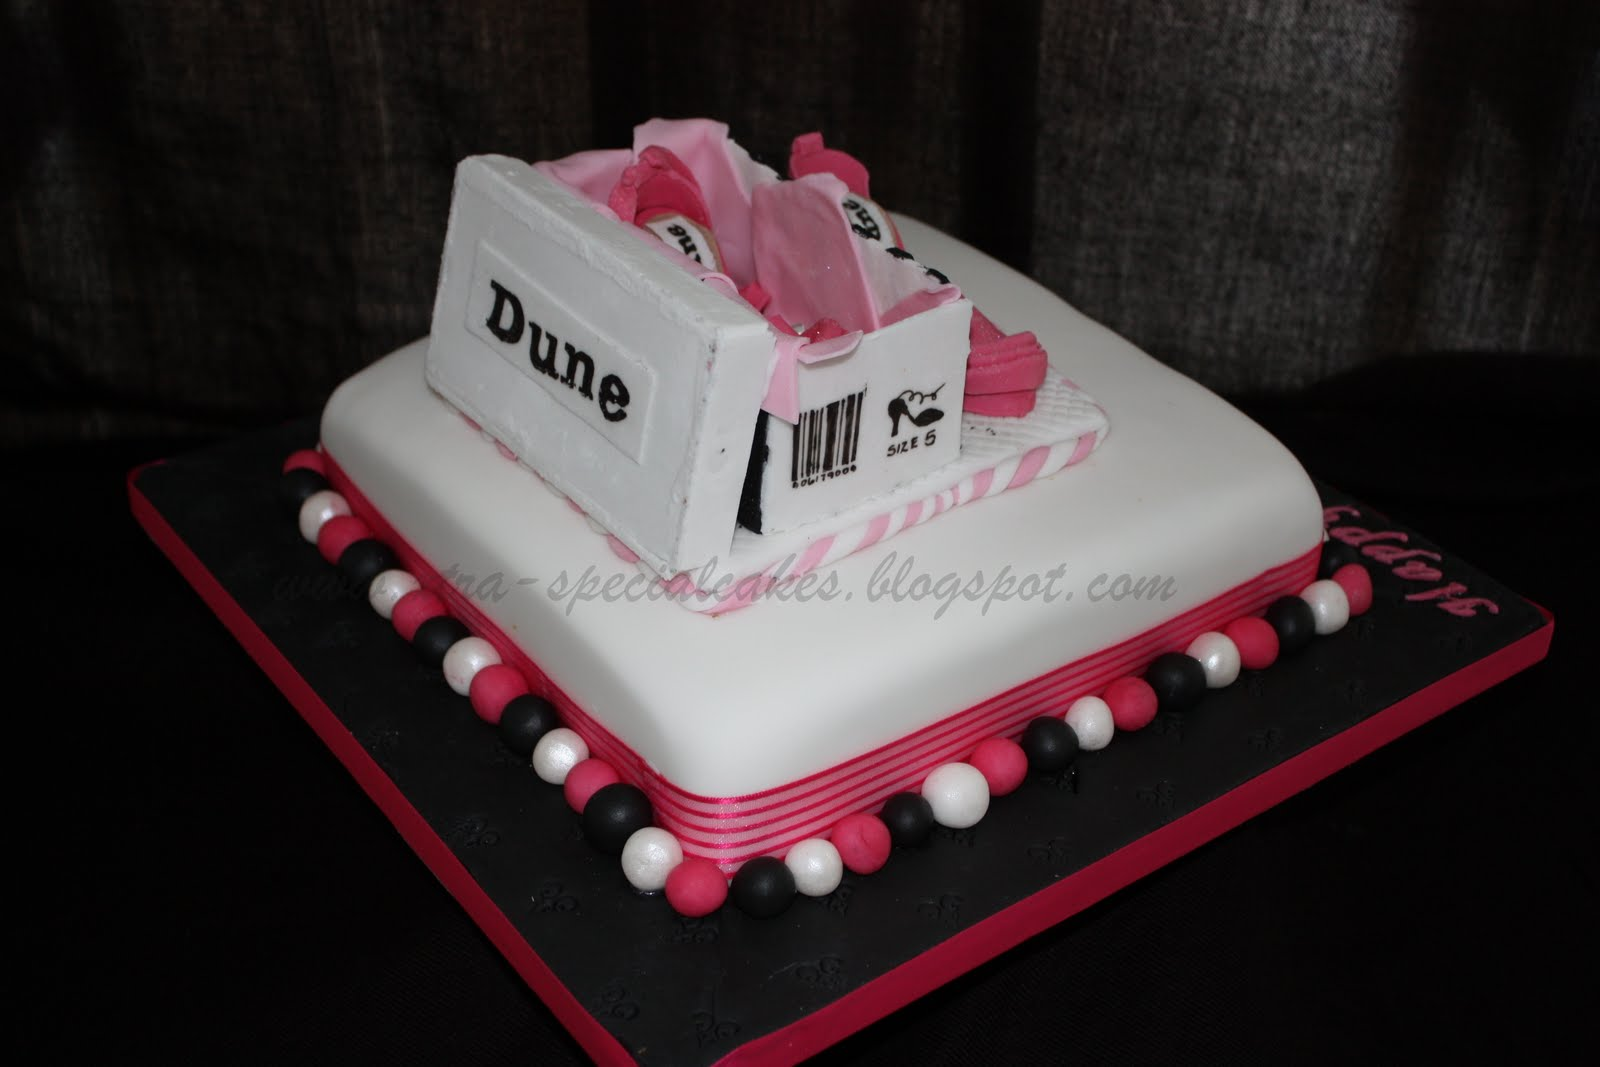 Cake Design With Shoes : Xtra Special Cakes: Designer shoe cake